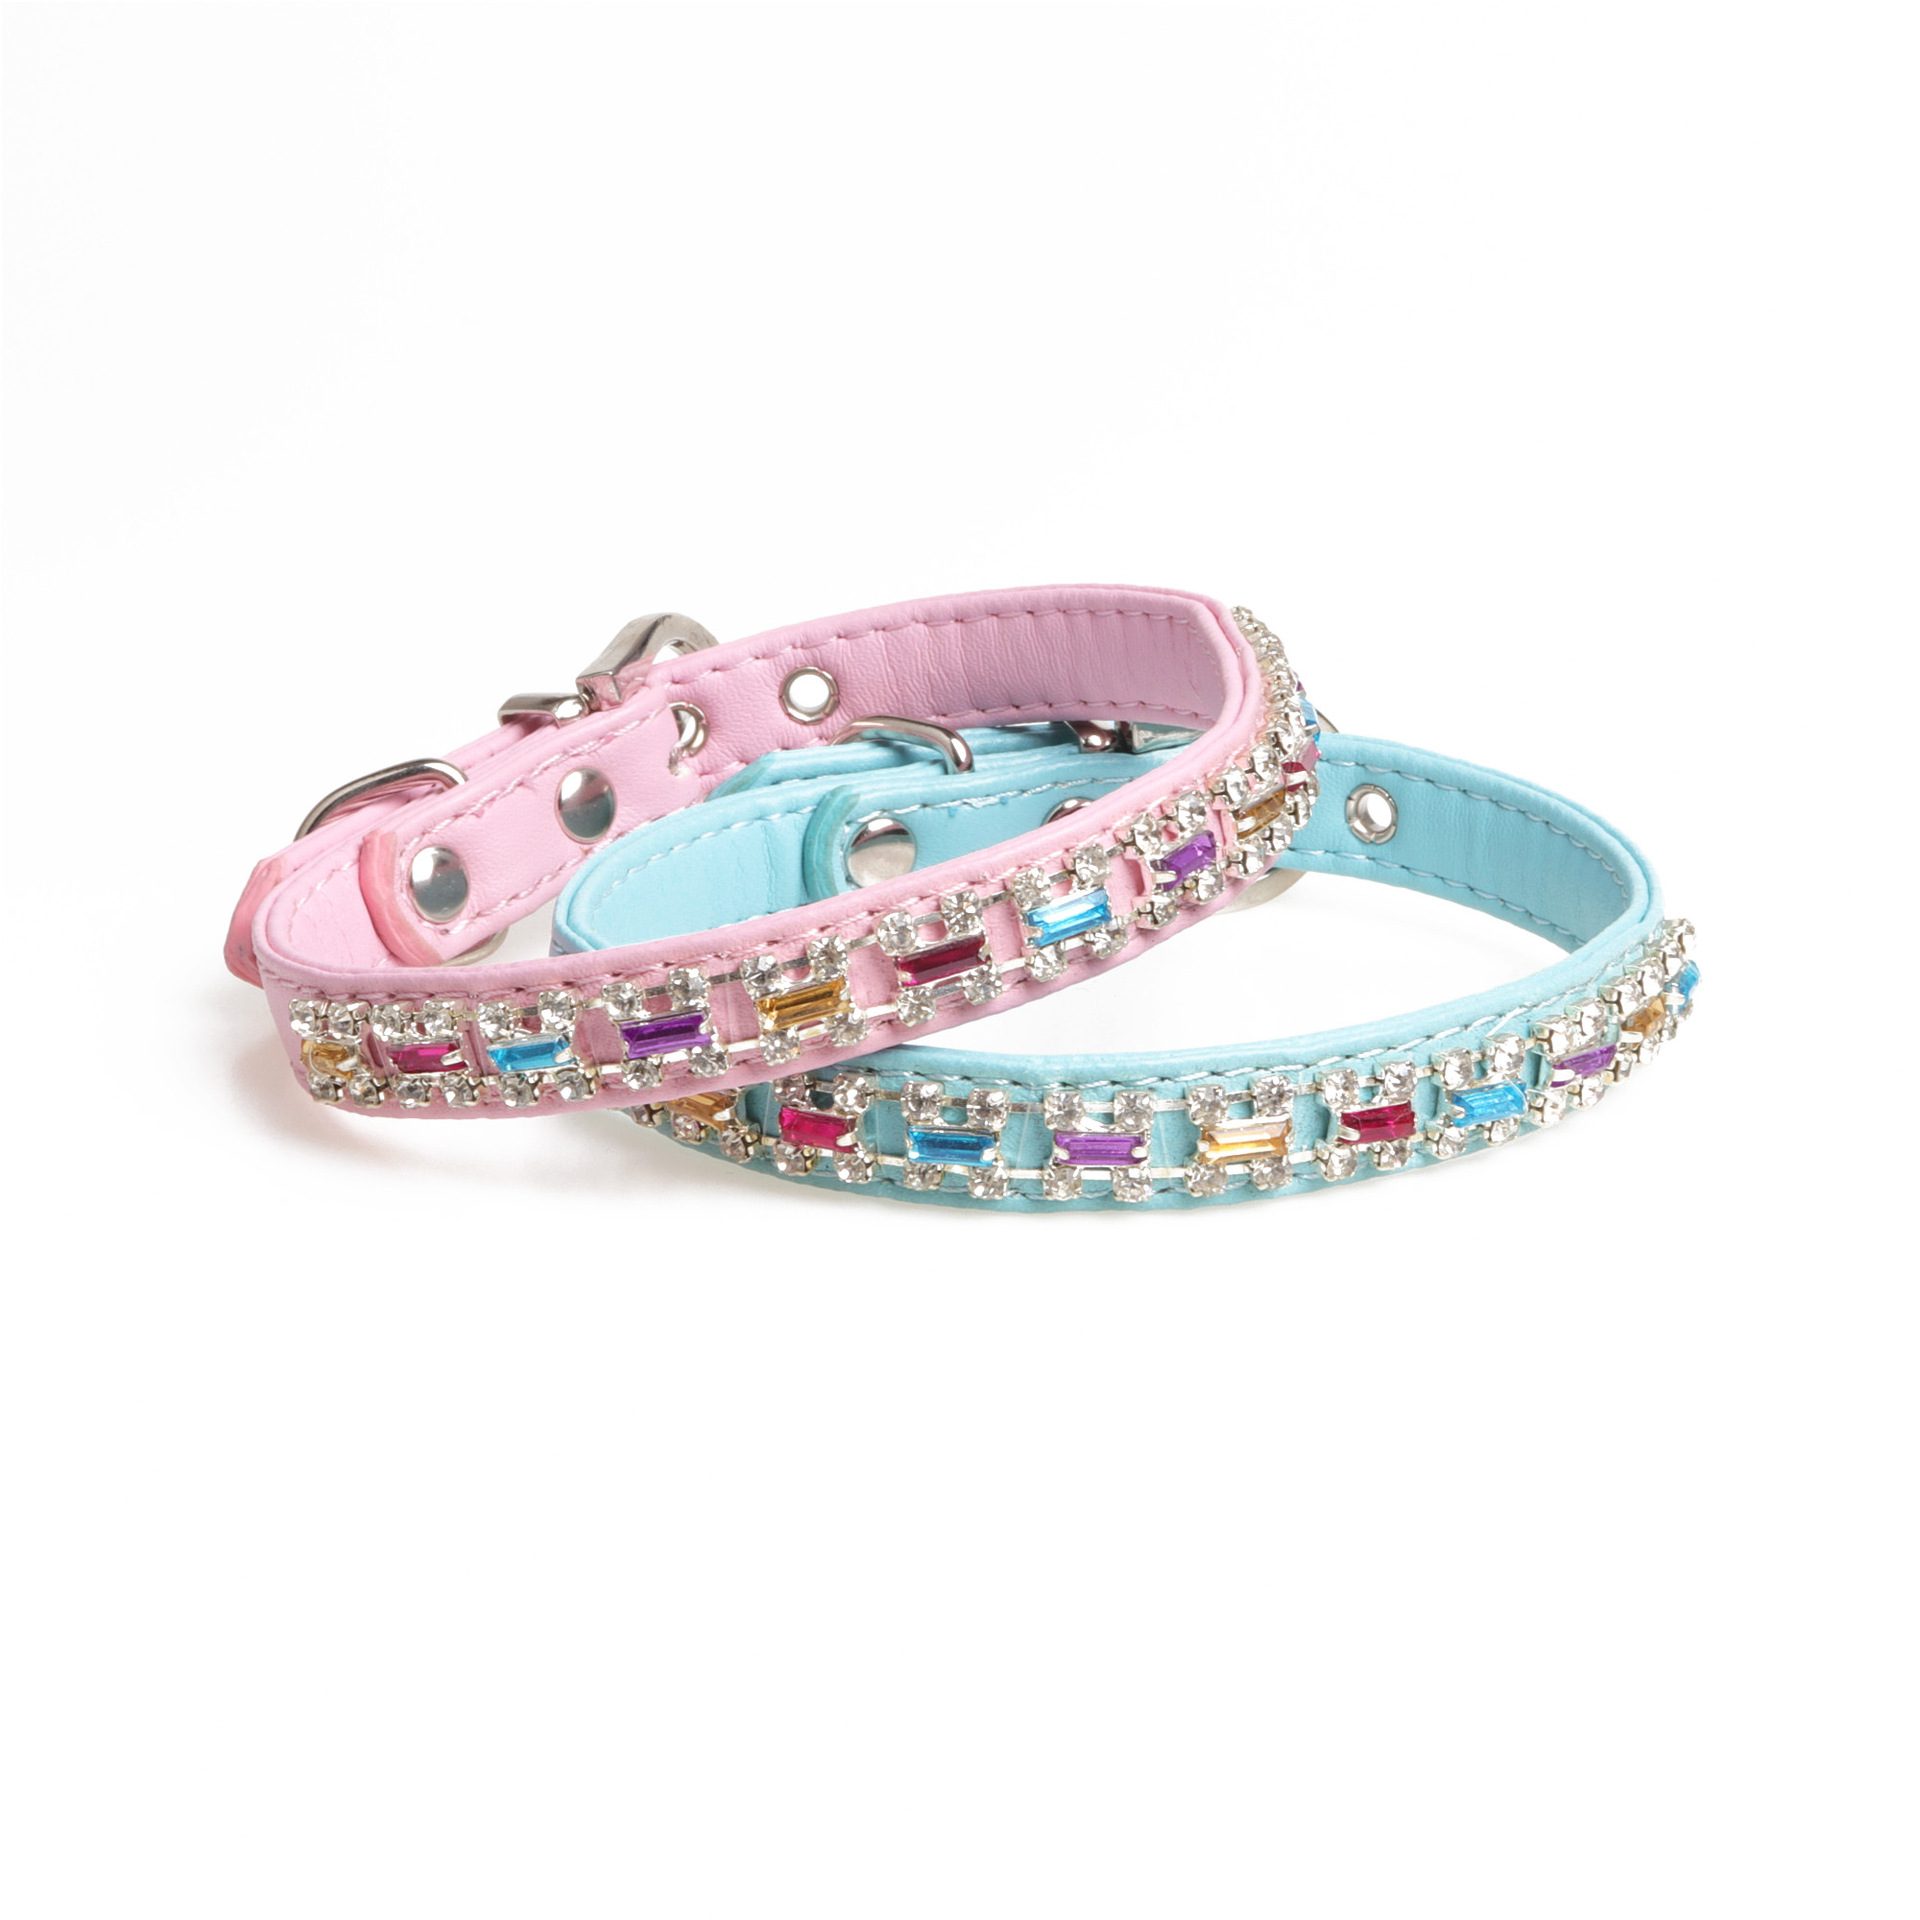 Amin Lattice Currently Available New Style Pu Bite-proof Protector Small And Medium-sized Dogs Dog Neck Ring Manufacturers Direc